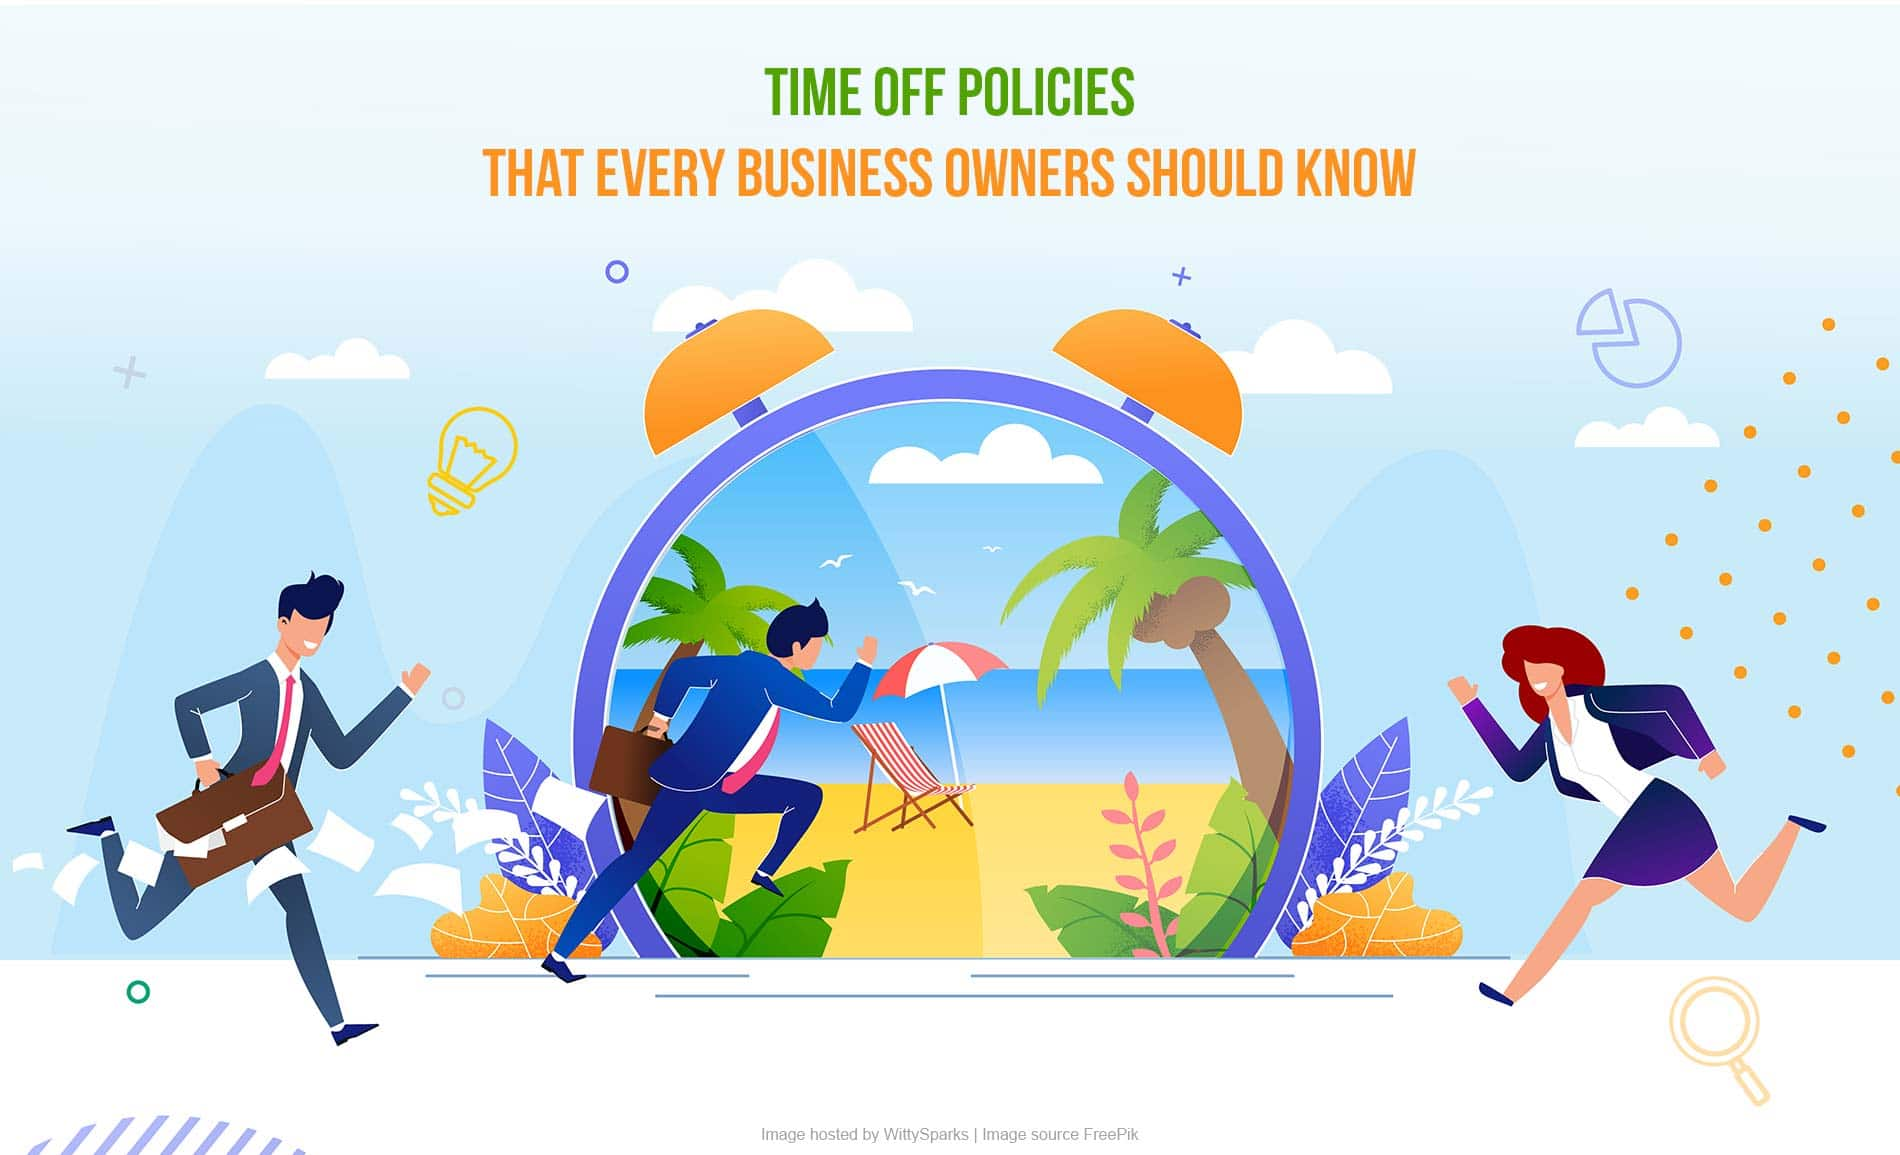 Paid time off or personal time off policies